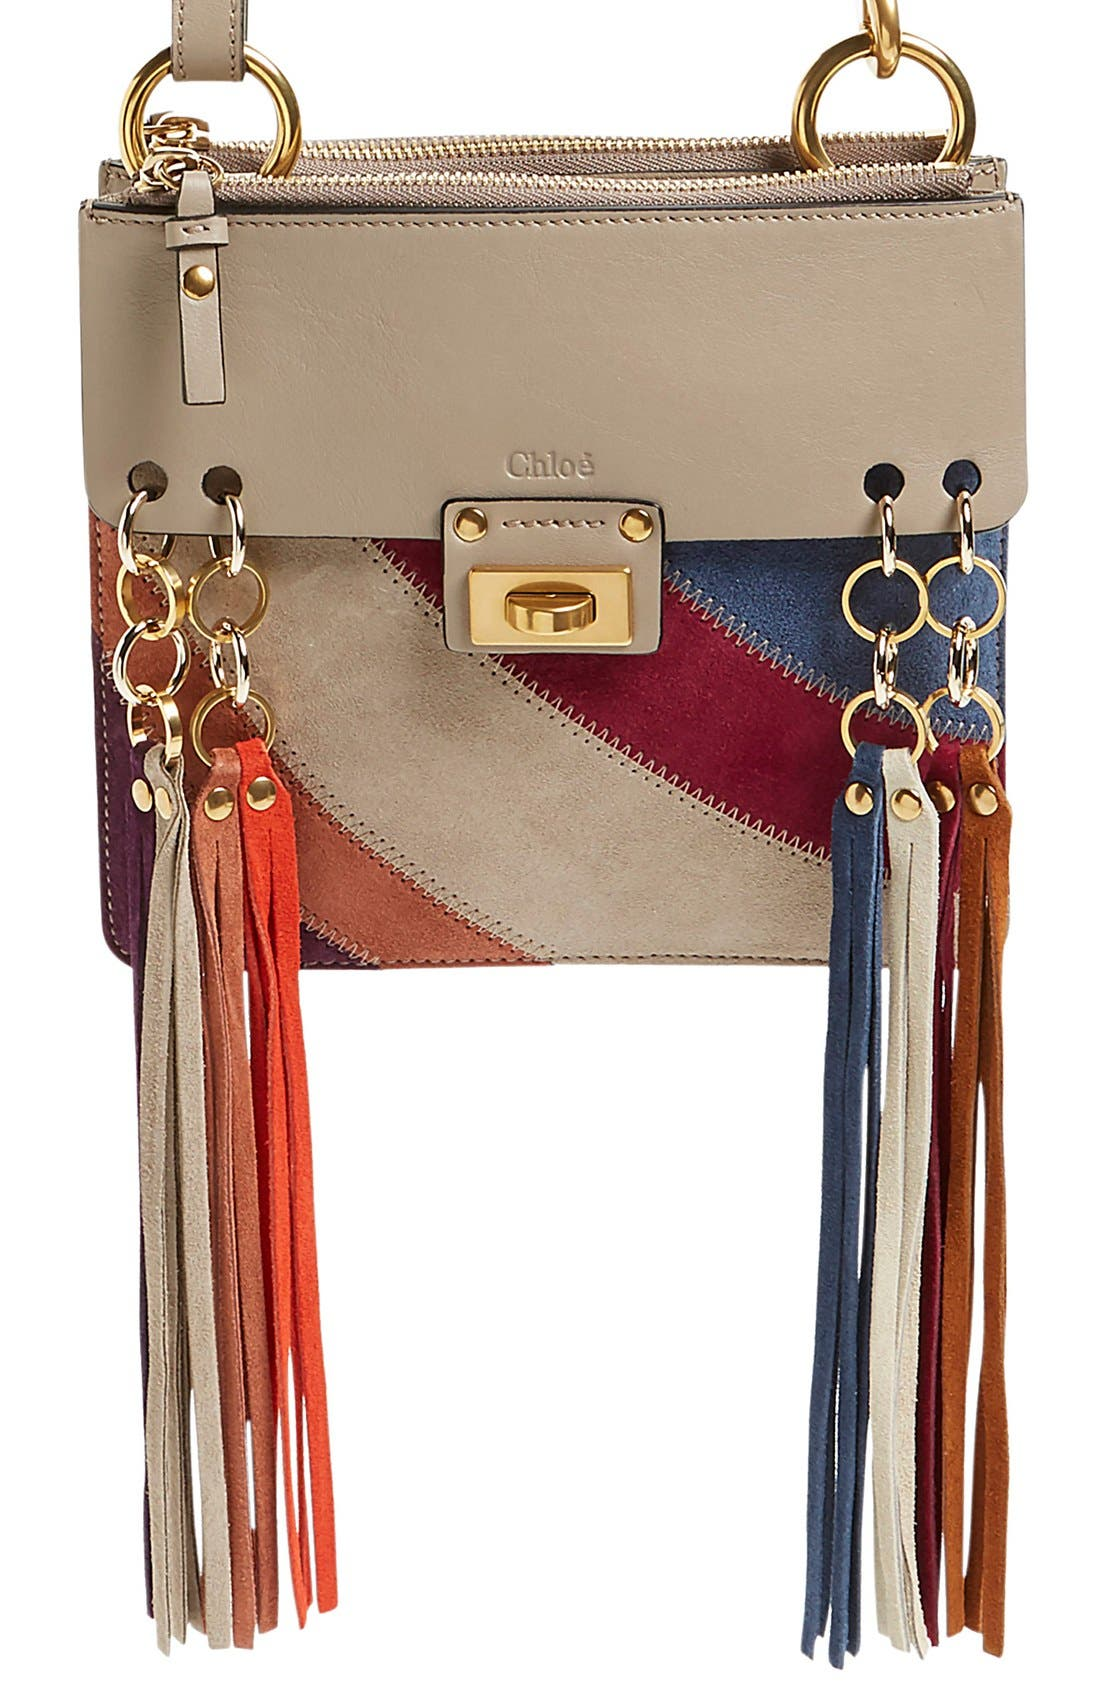 Alternate Image 1 Selected - Chloé 'Small Jane' Suede Fringe Patchwork Leather Crossbody Bag